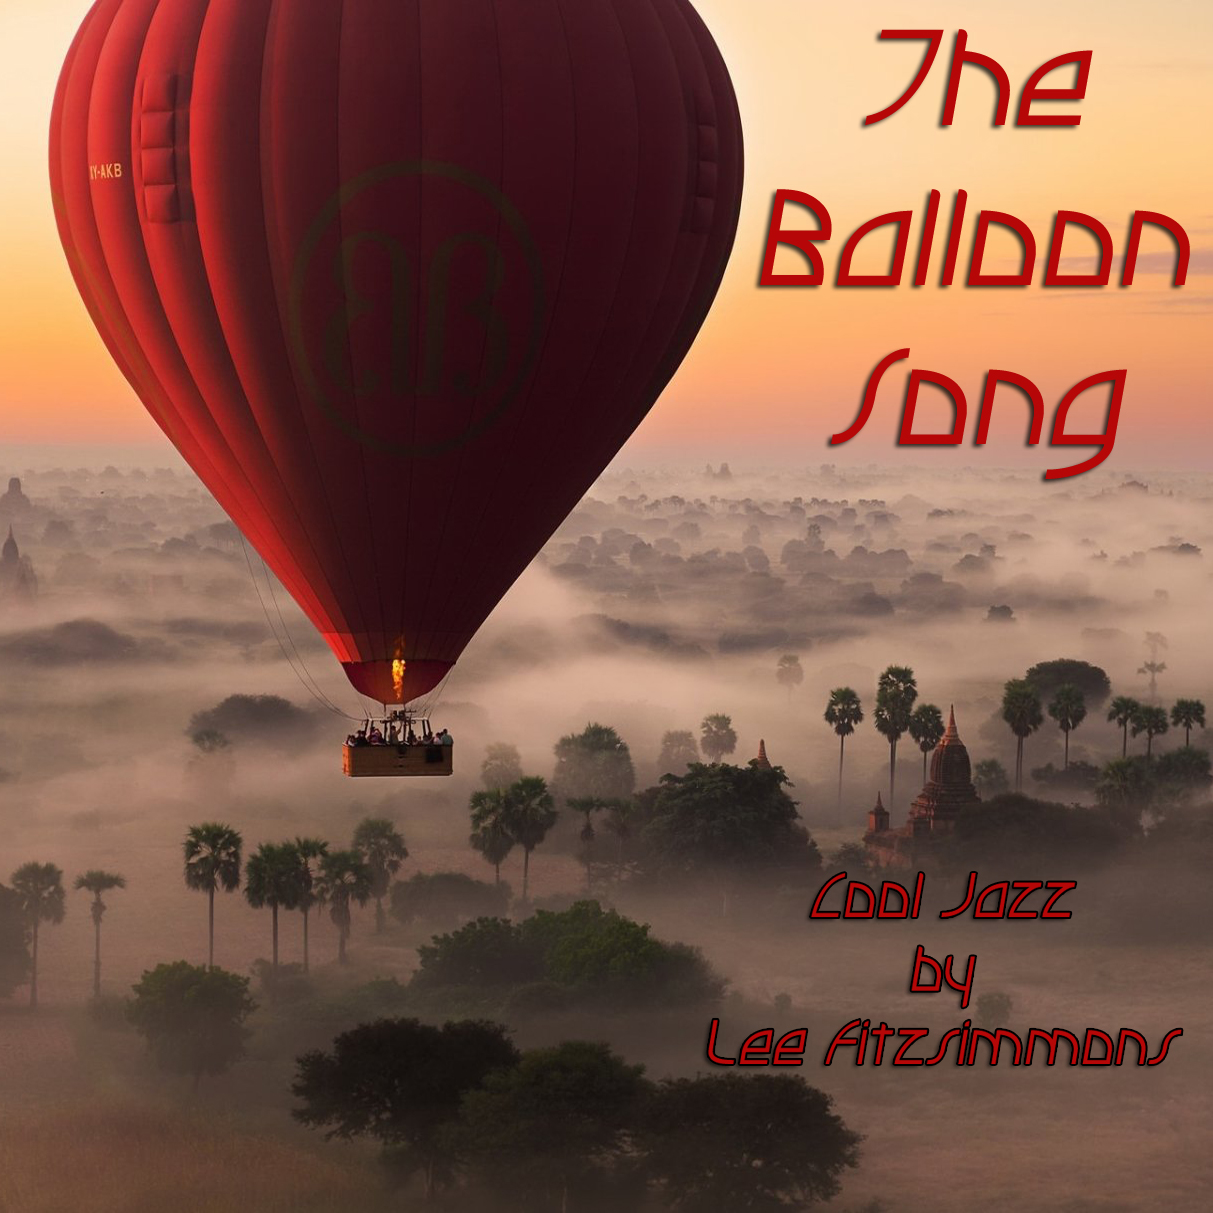 The Balloon Song